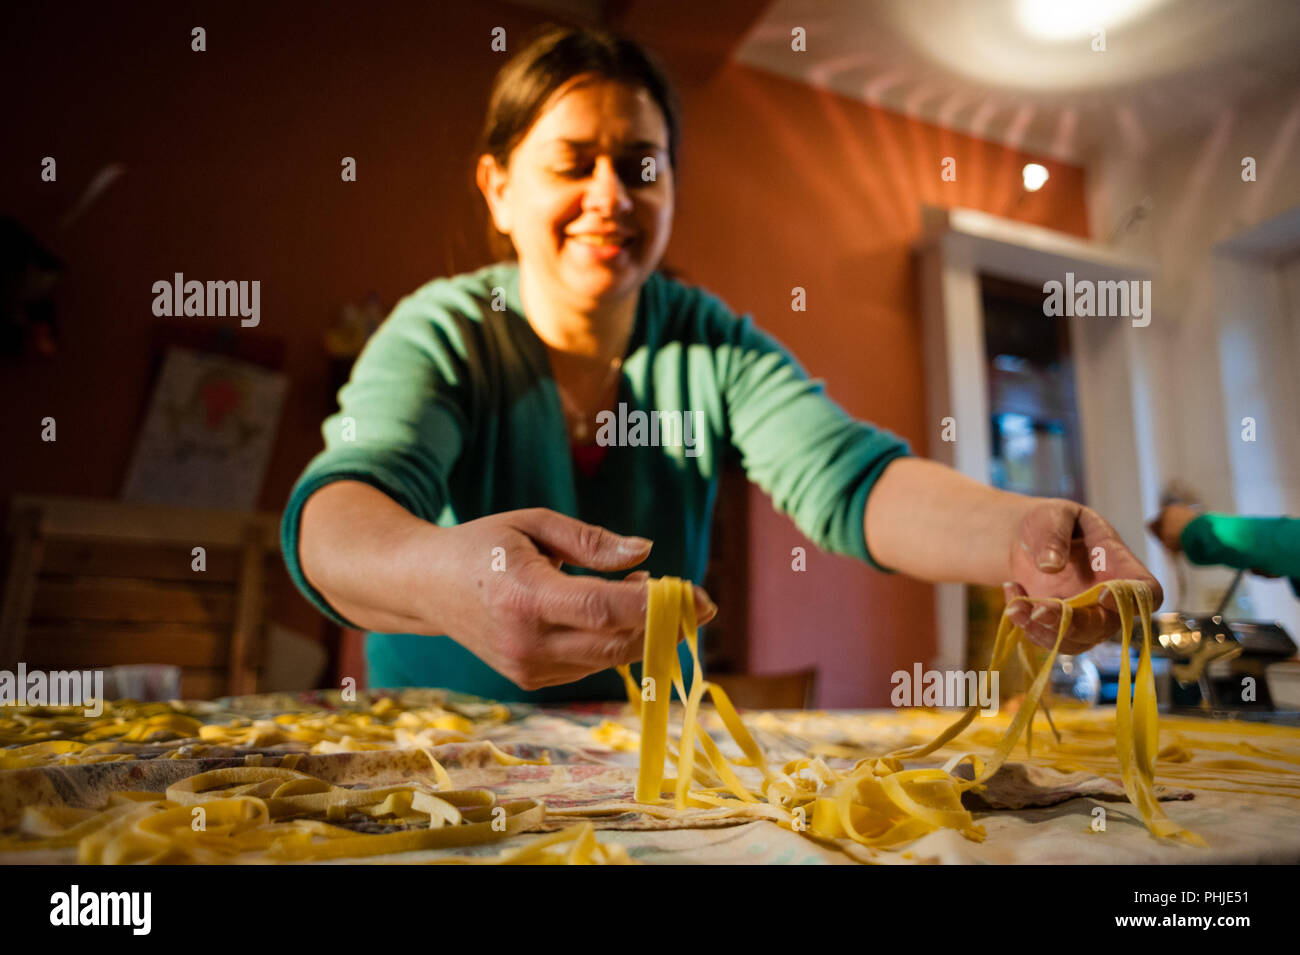 40 year old woman prepares fresh egg pasta homemade noodles - Stock Image